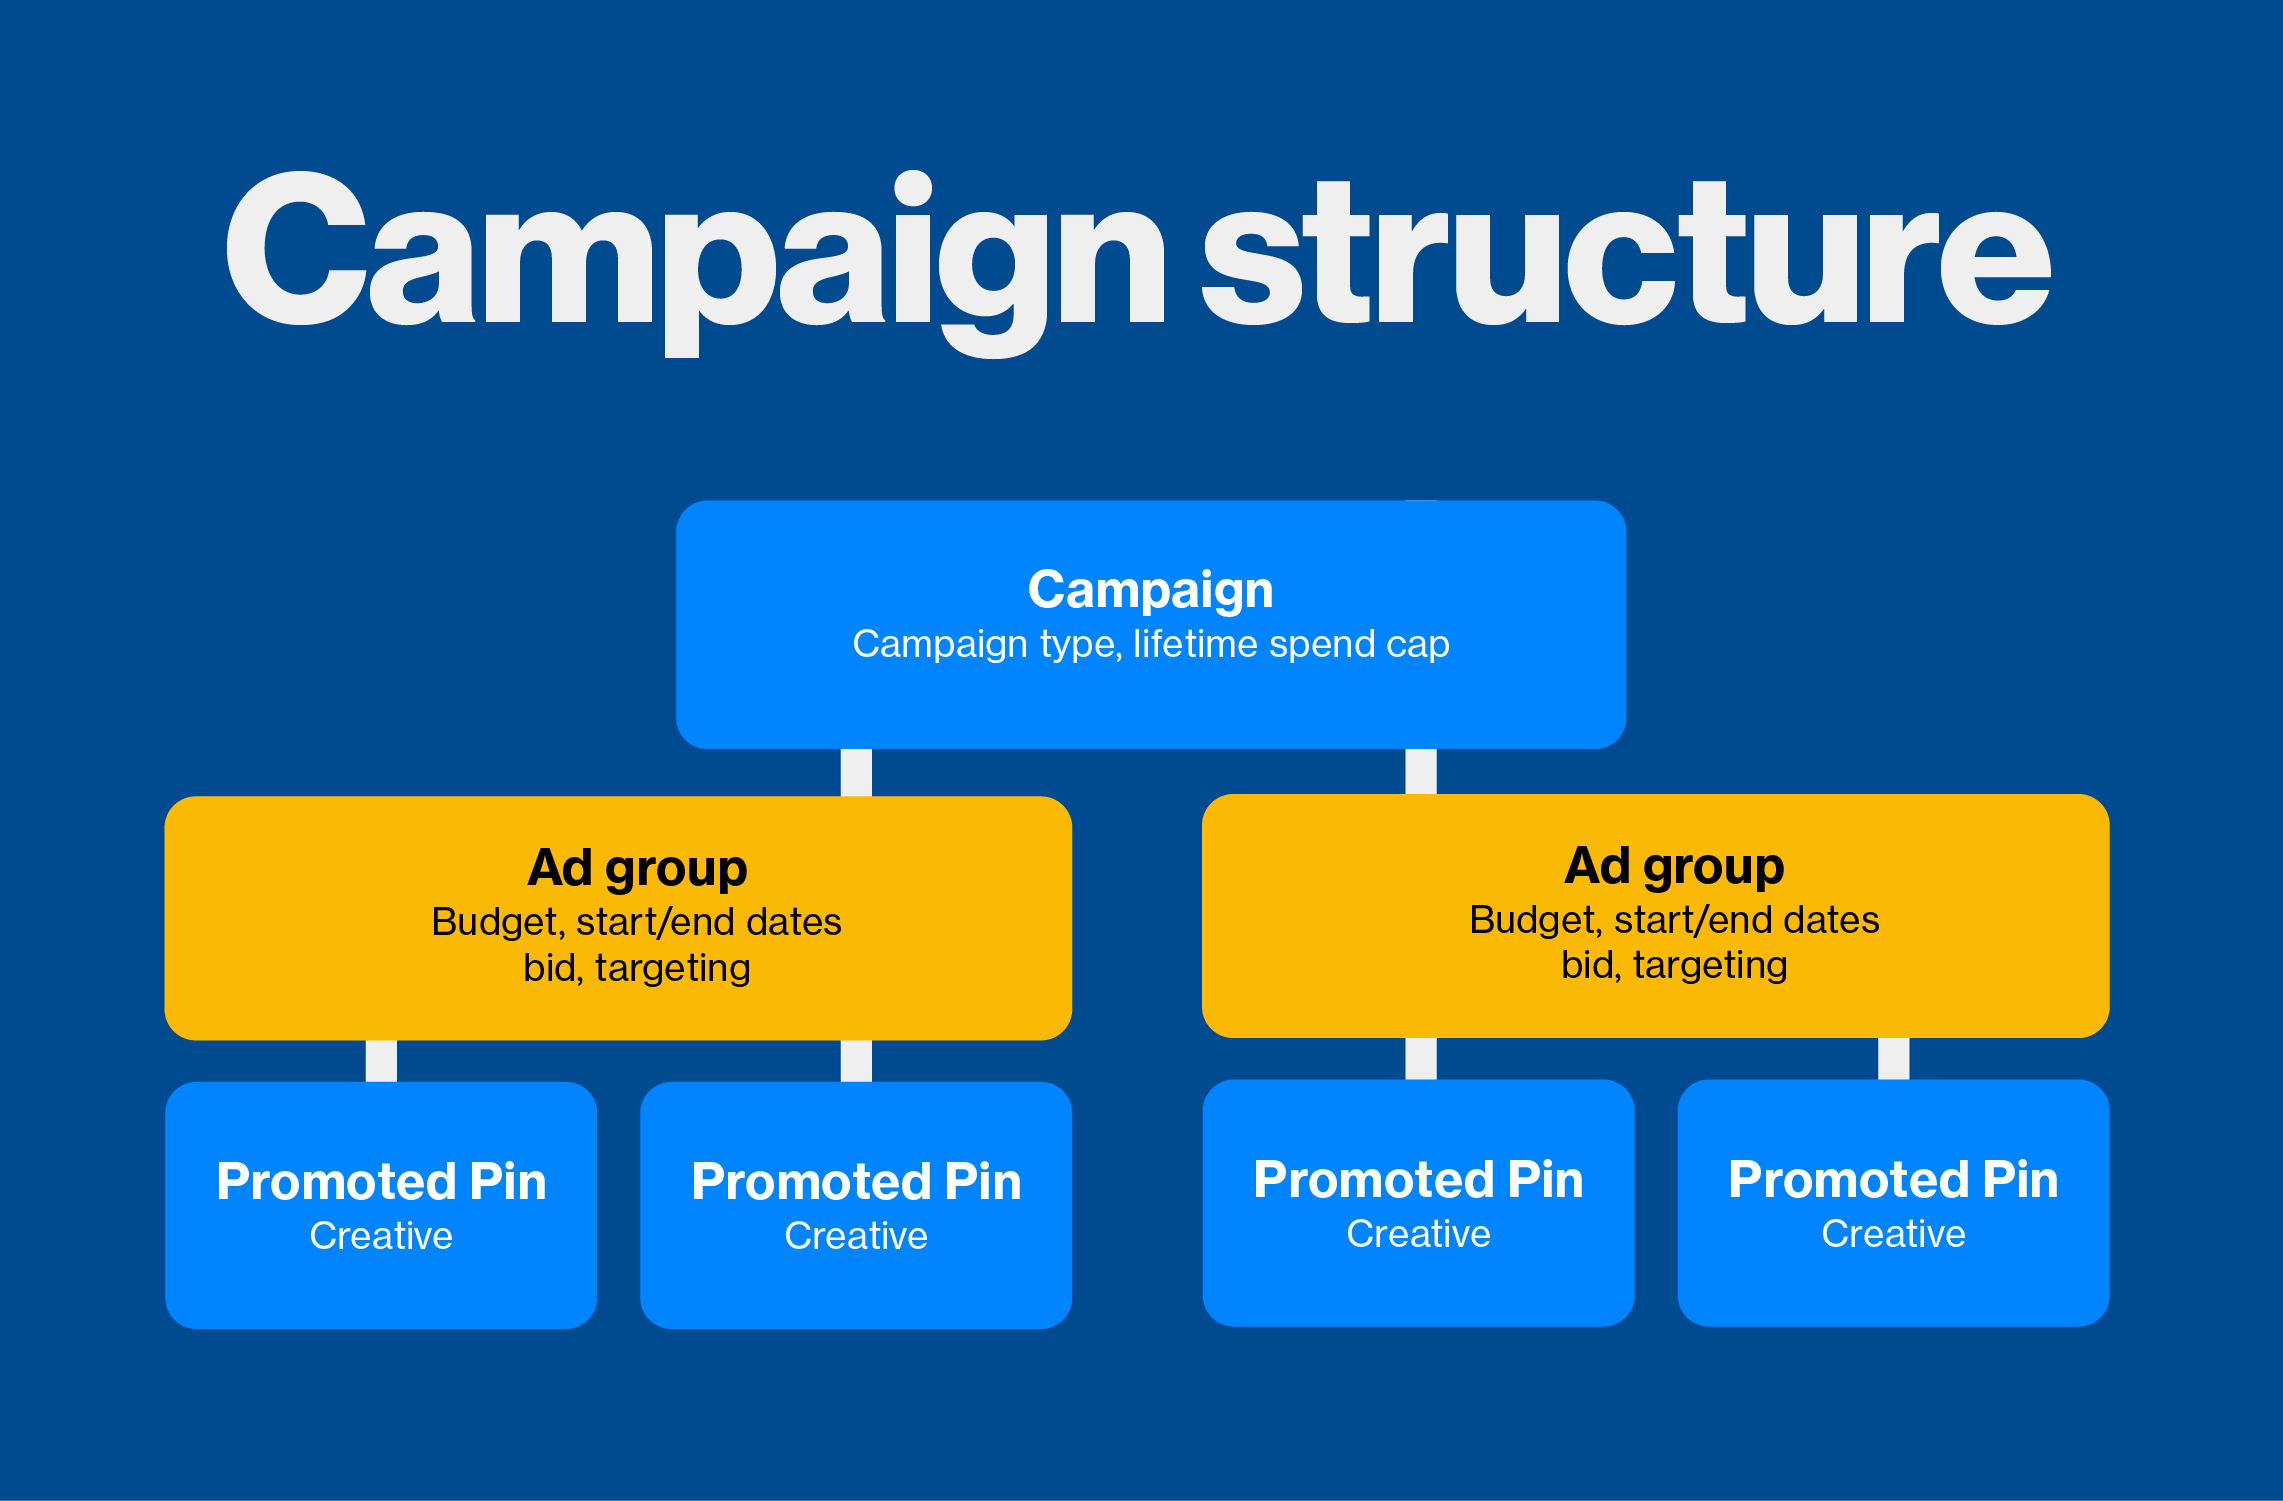 Pinterest Announces Ad Groups for Campaigns | Social Media Today